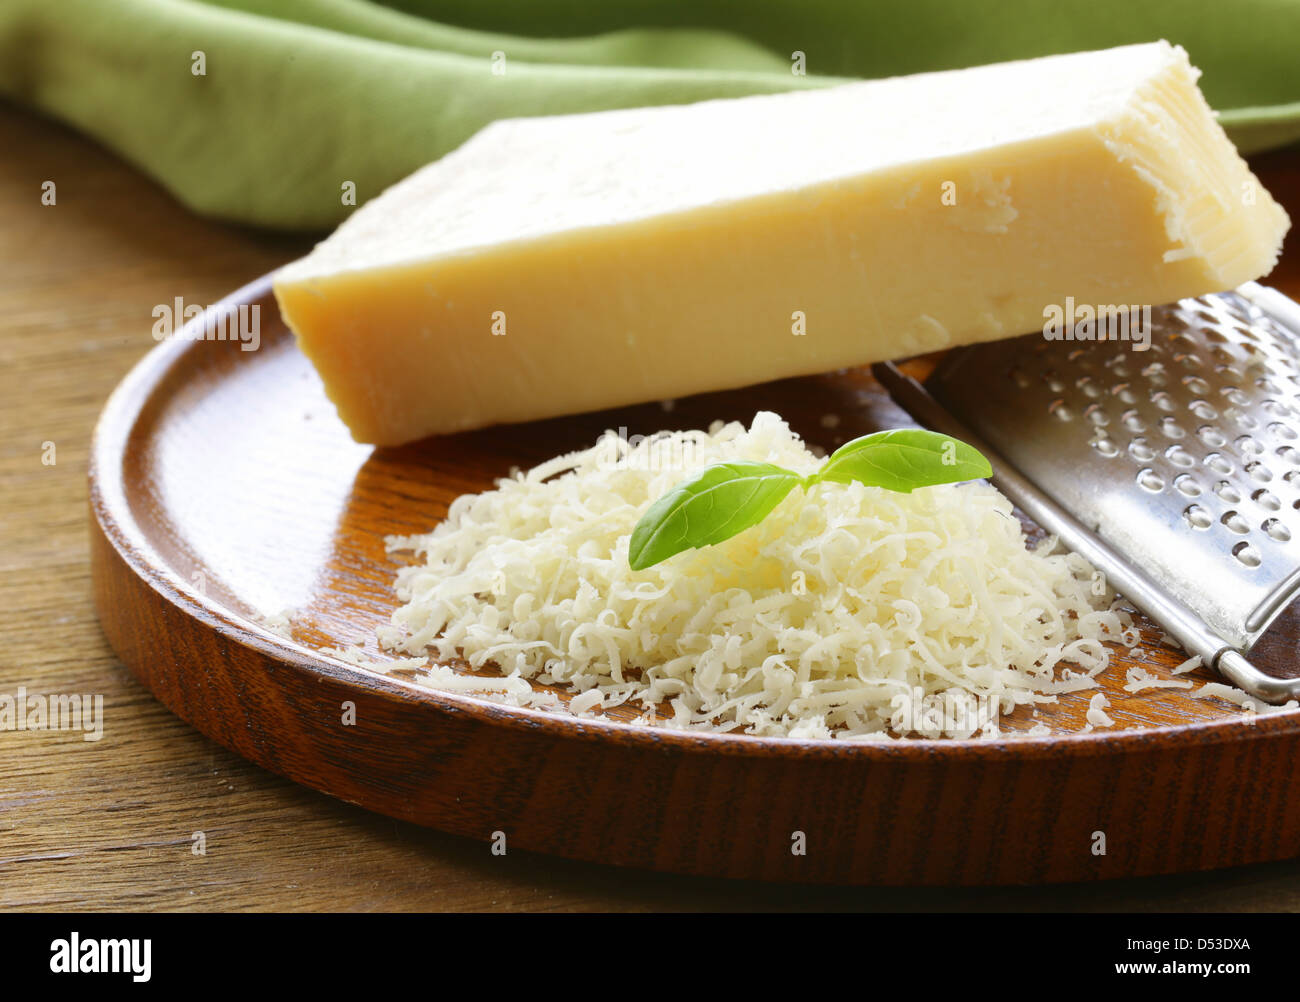 grated parmesan cheese and metal grater on wooden plate - Stock Image